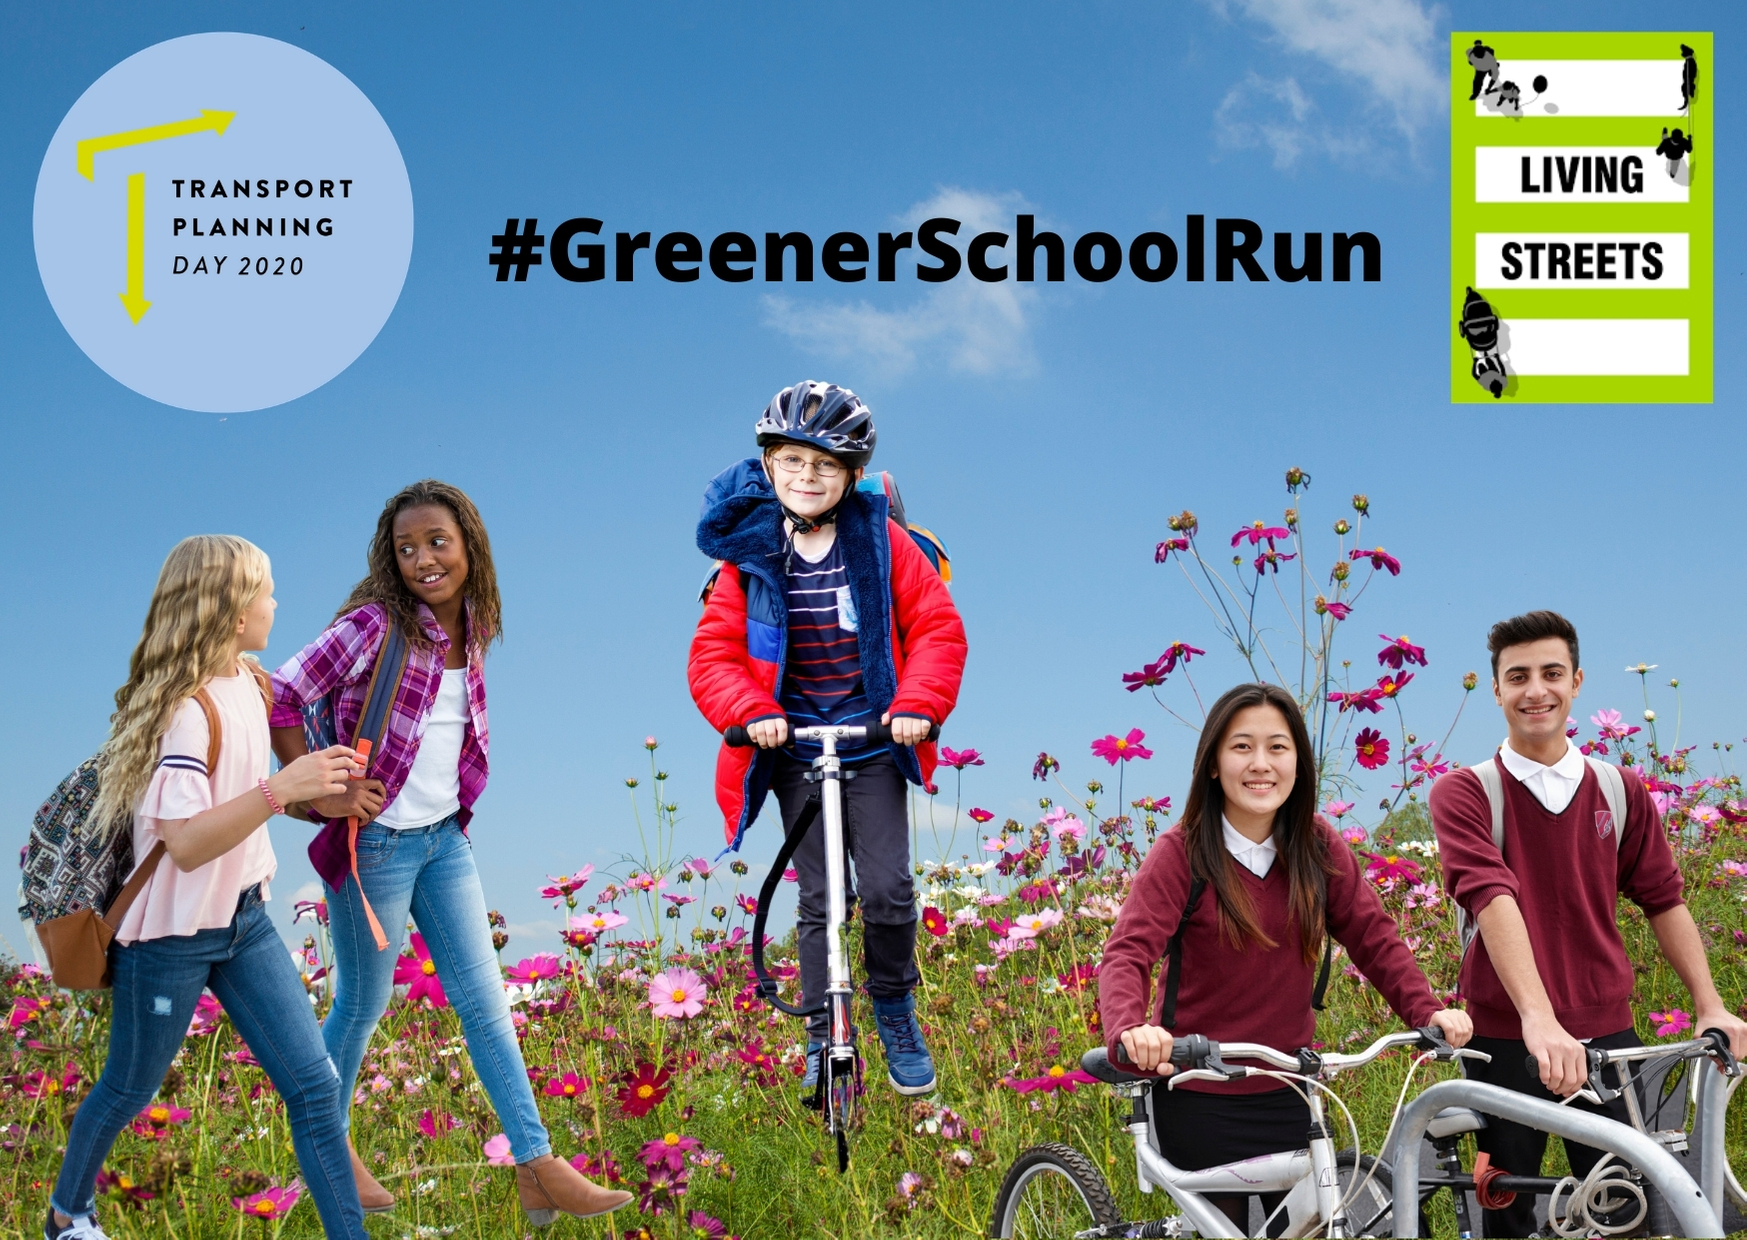 greener school run poster